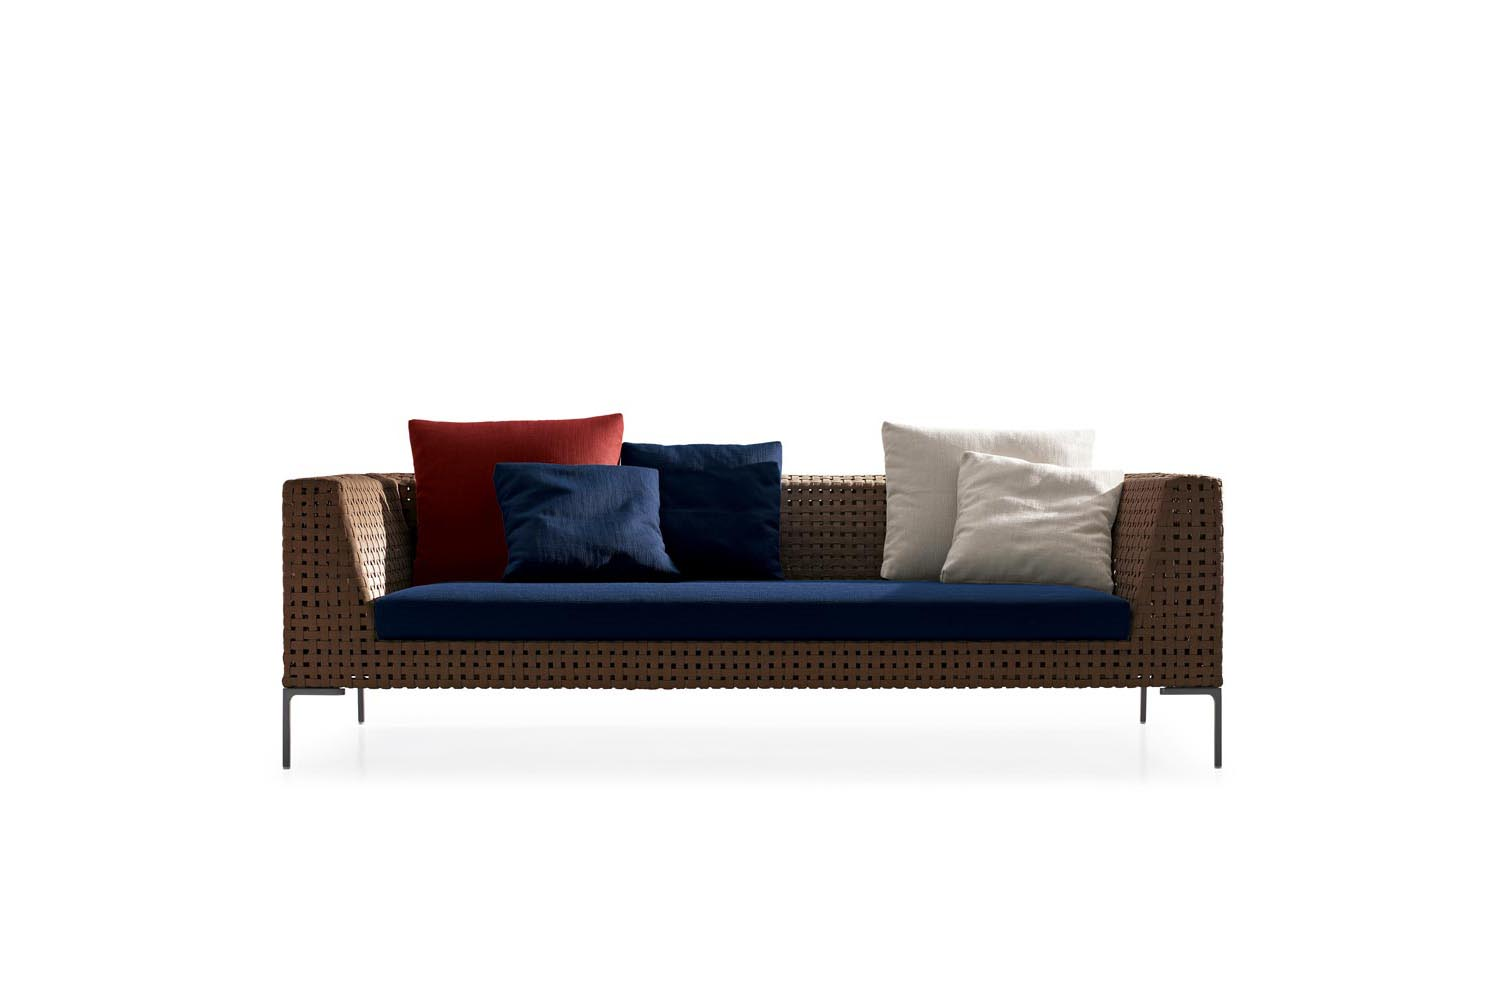 outdoor sofa singapore can i reupholster my leather with fabric charles by antonio citterio for b andb italia